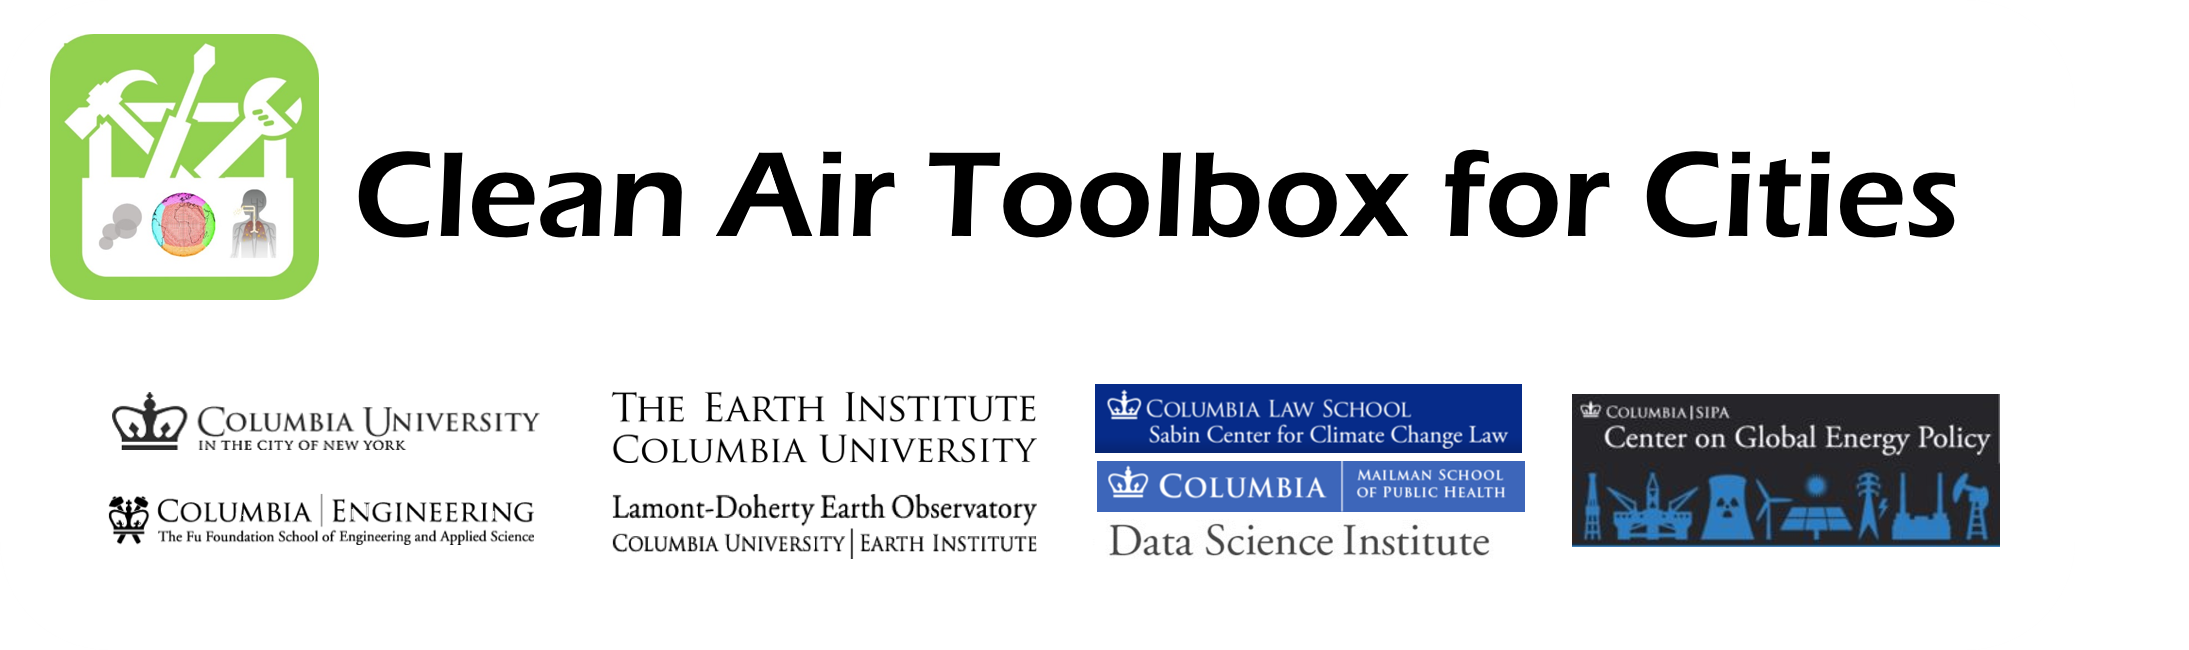 Clean Air Toolbox